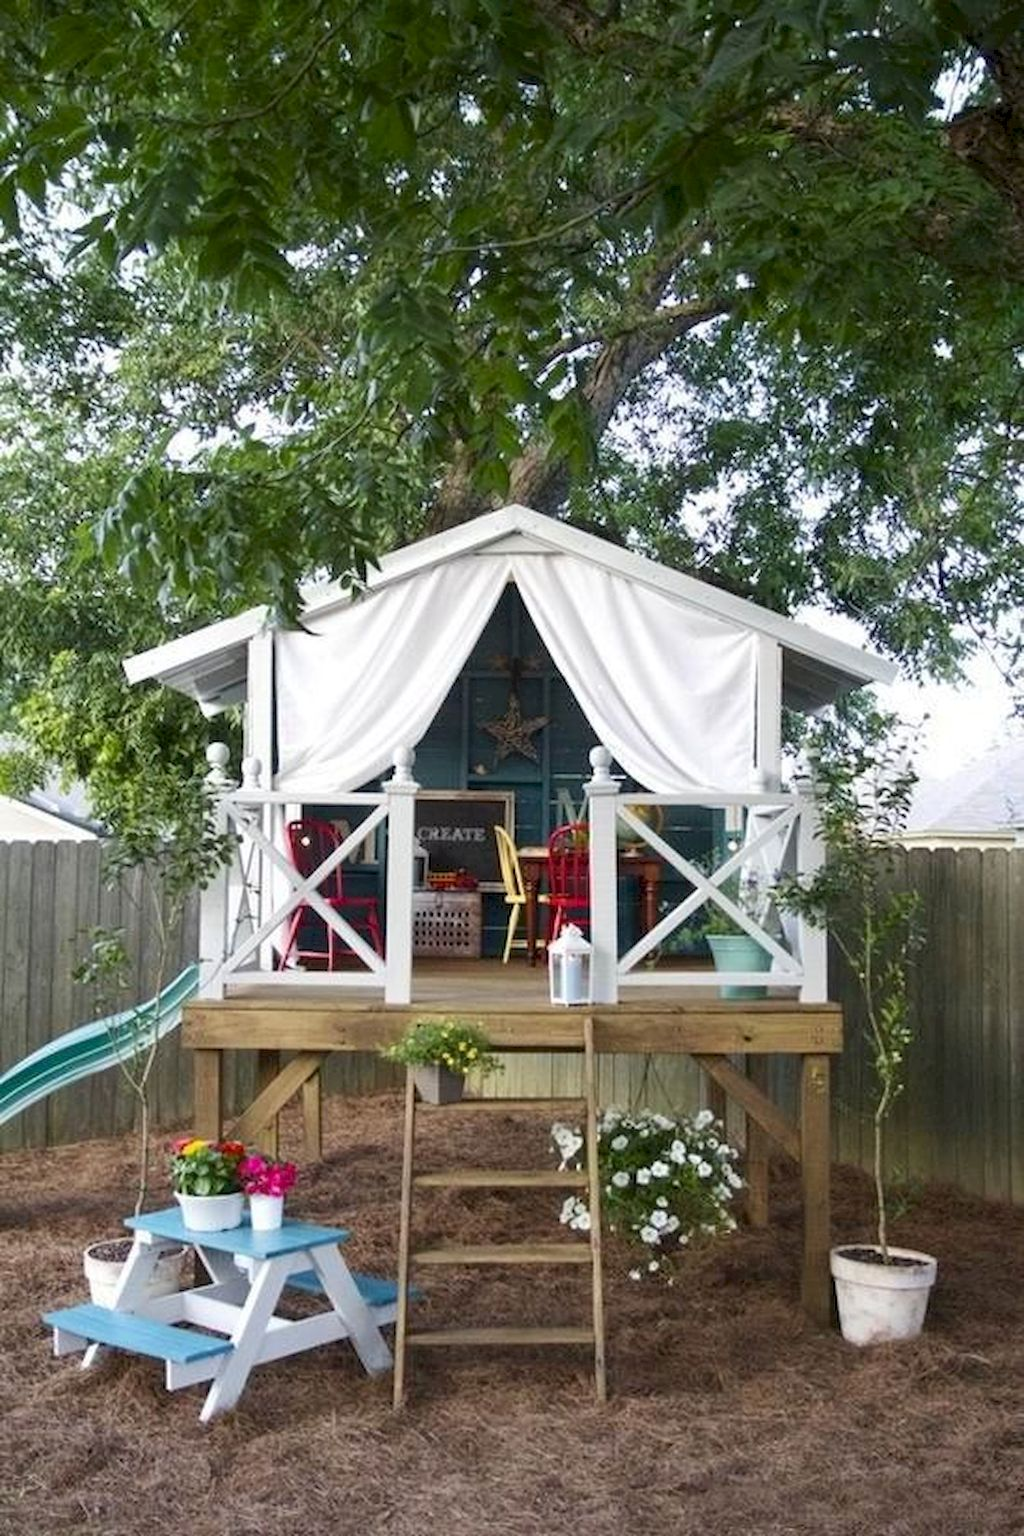 Wondrous Playhouse Plan Into Your Existing Backyard Space